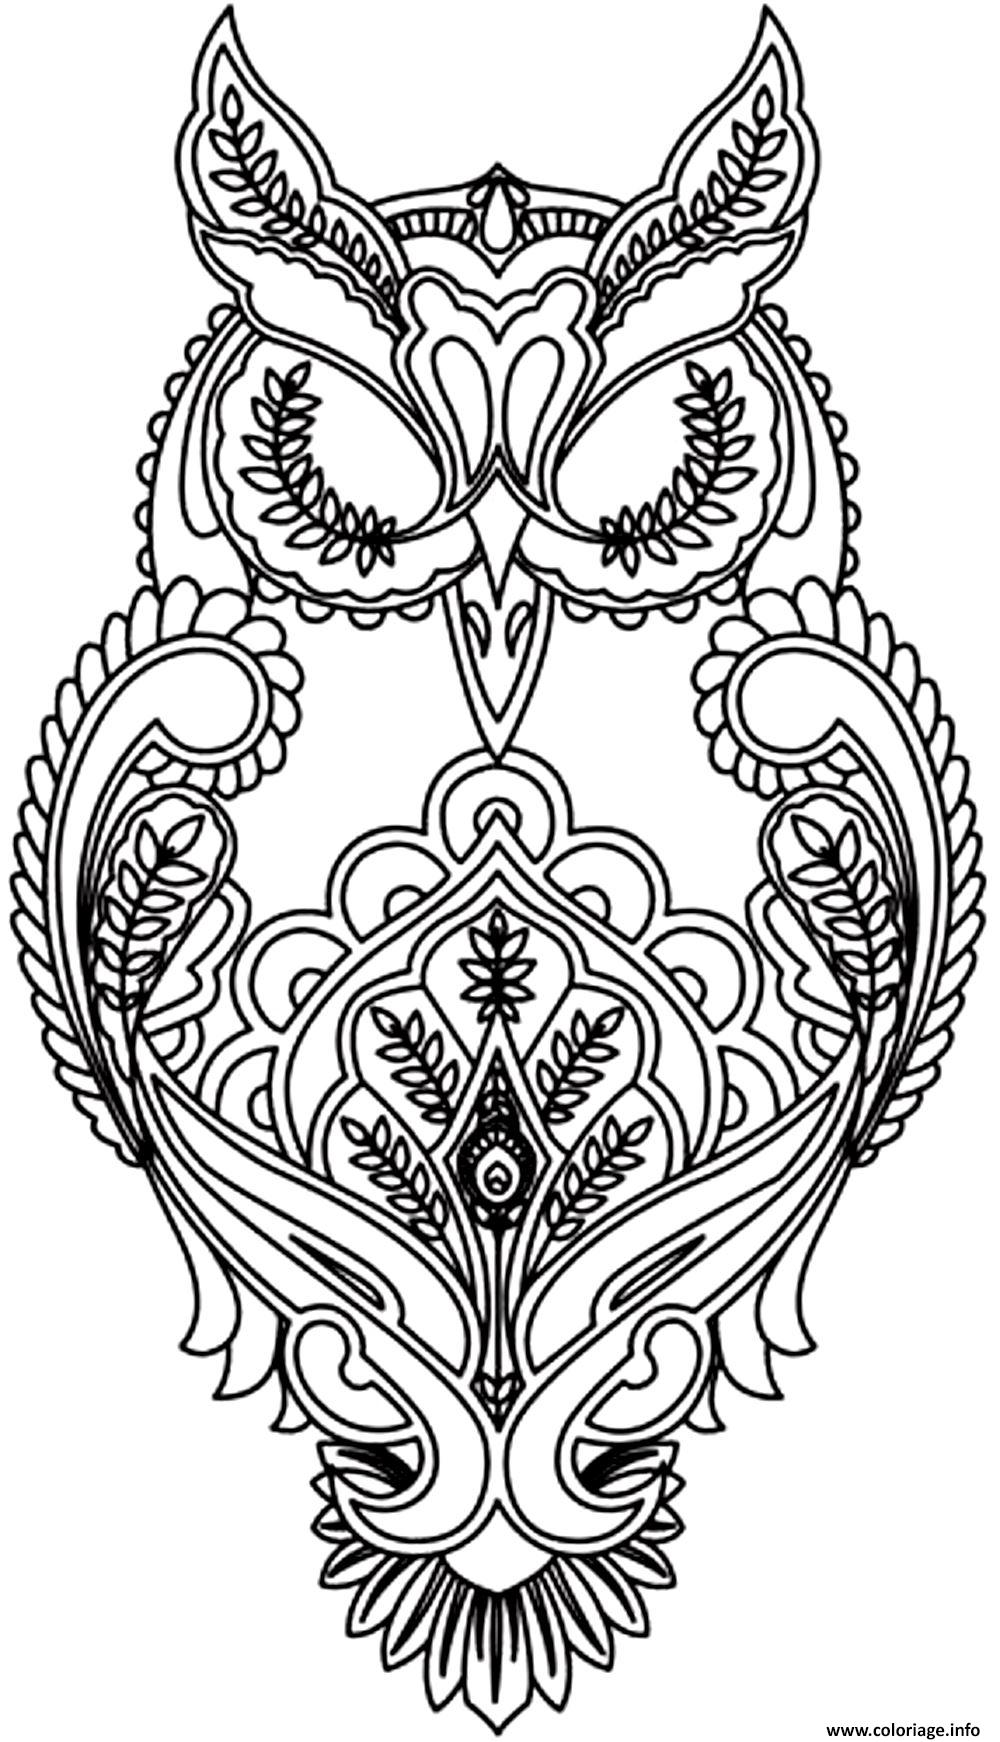 coloriage adulte difficile hibou dessin. Black Bedroom Furniture Sets. Home Design Ideas